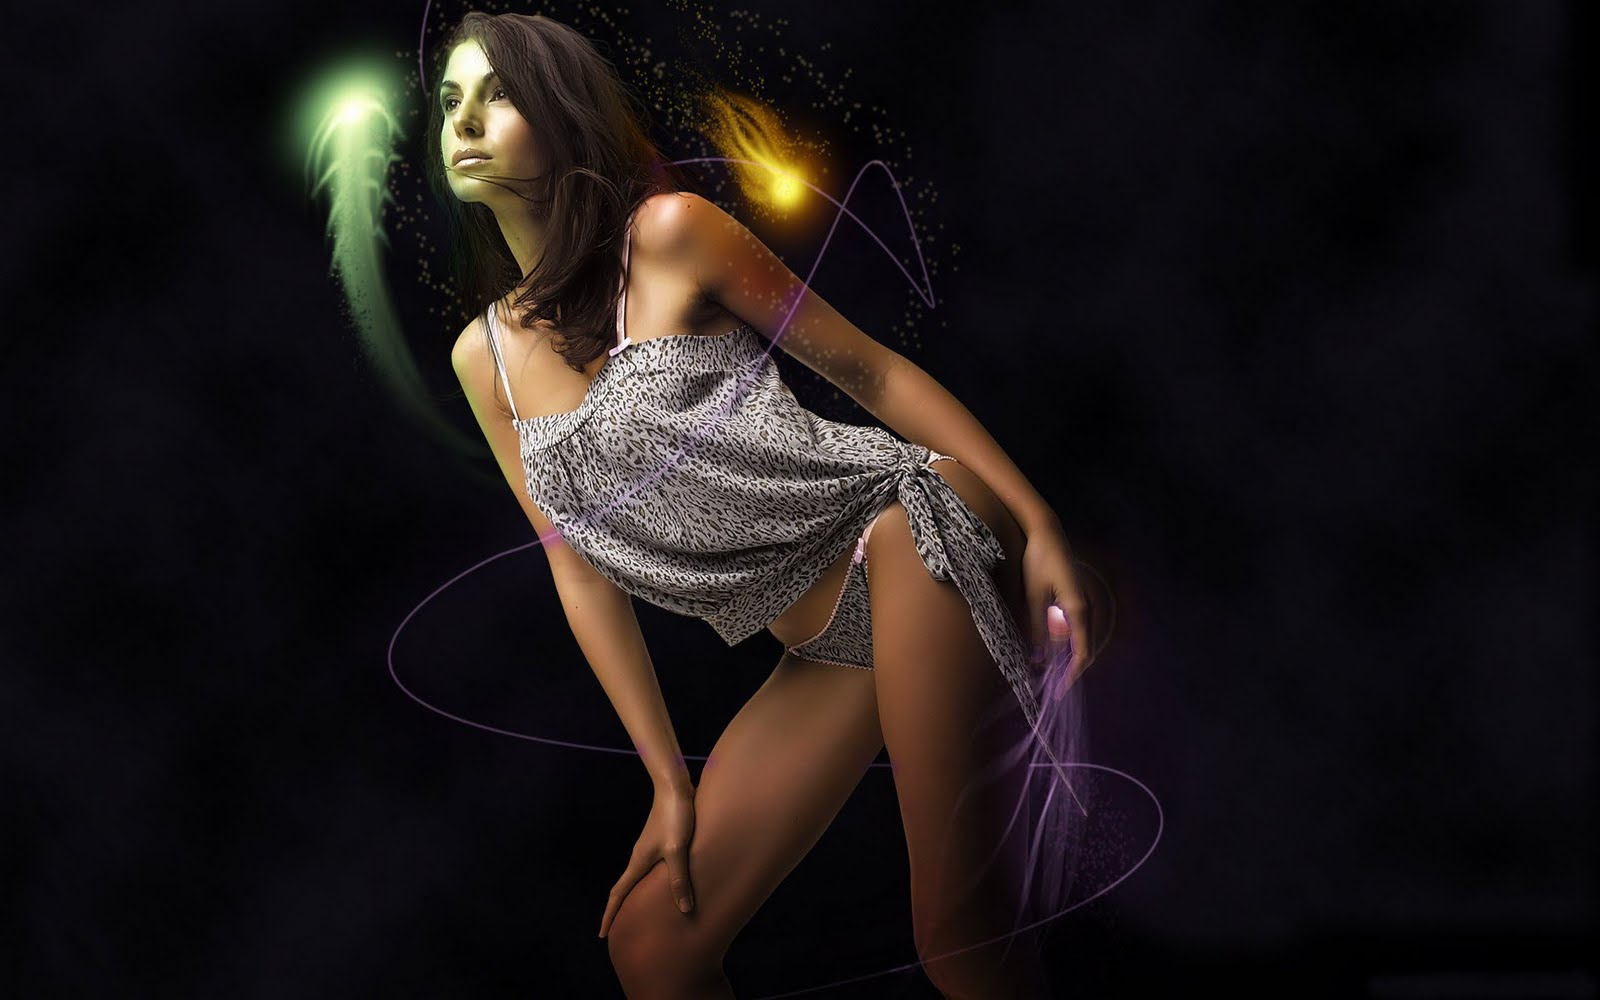 h d h d wallpapers: fantasy girls hd wallpapers fantasy and 3d girls